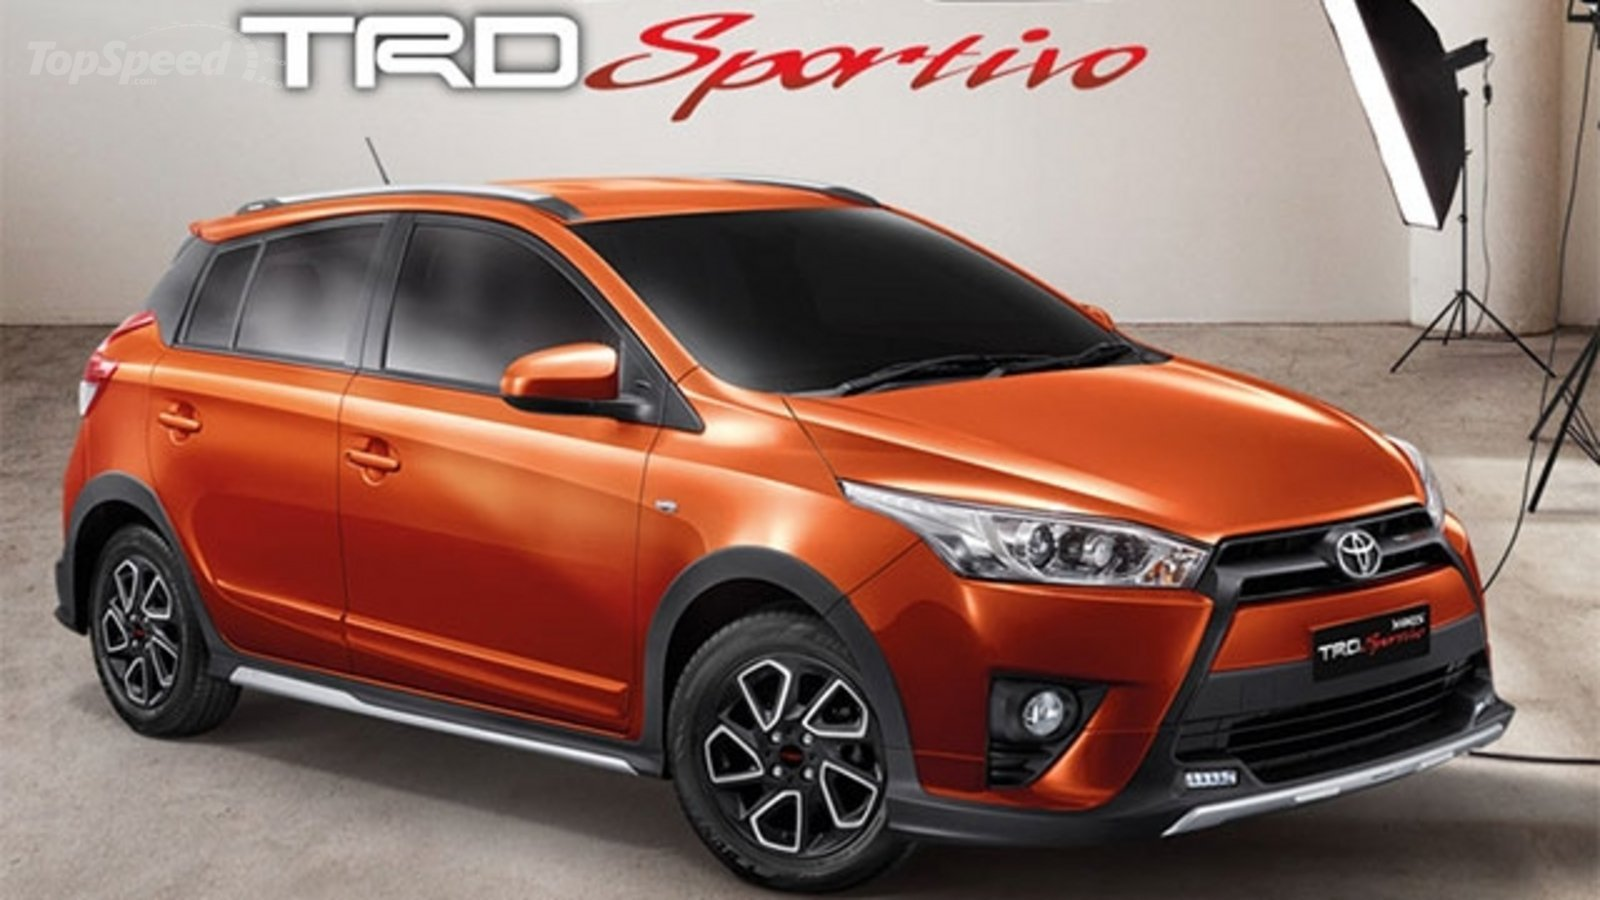 2016 Toyota Yaris TRD Sportivo Review - Top Speed